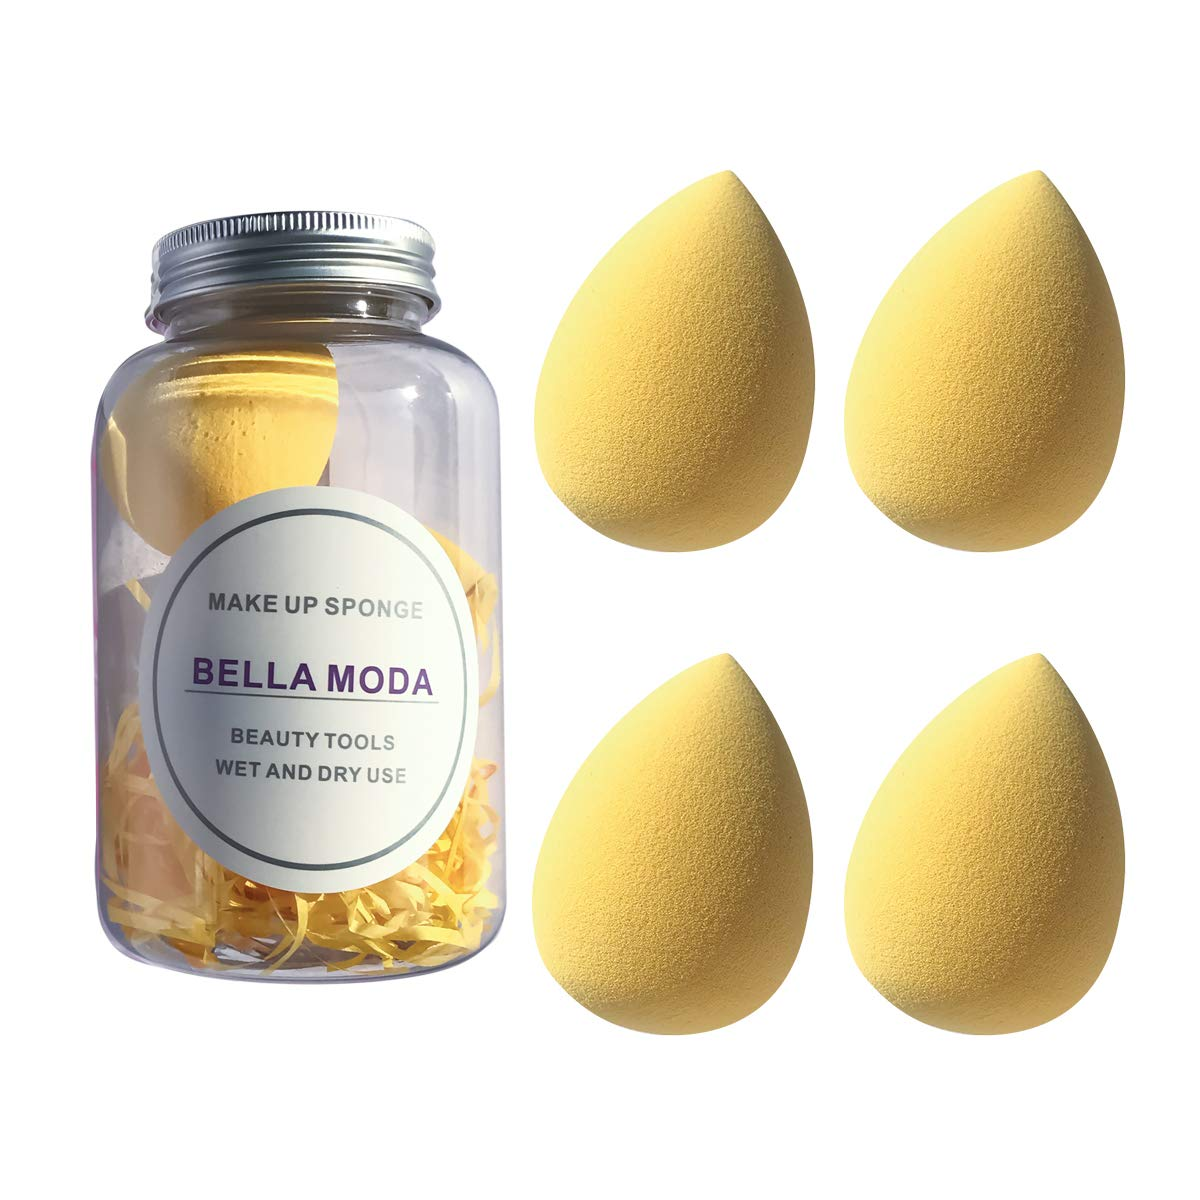 BELLA MODA 4Pcs Makeup Sponges Set Blender Beauty Wet and Dry Used for Powders and Creams Yellow Color Blending Sponges